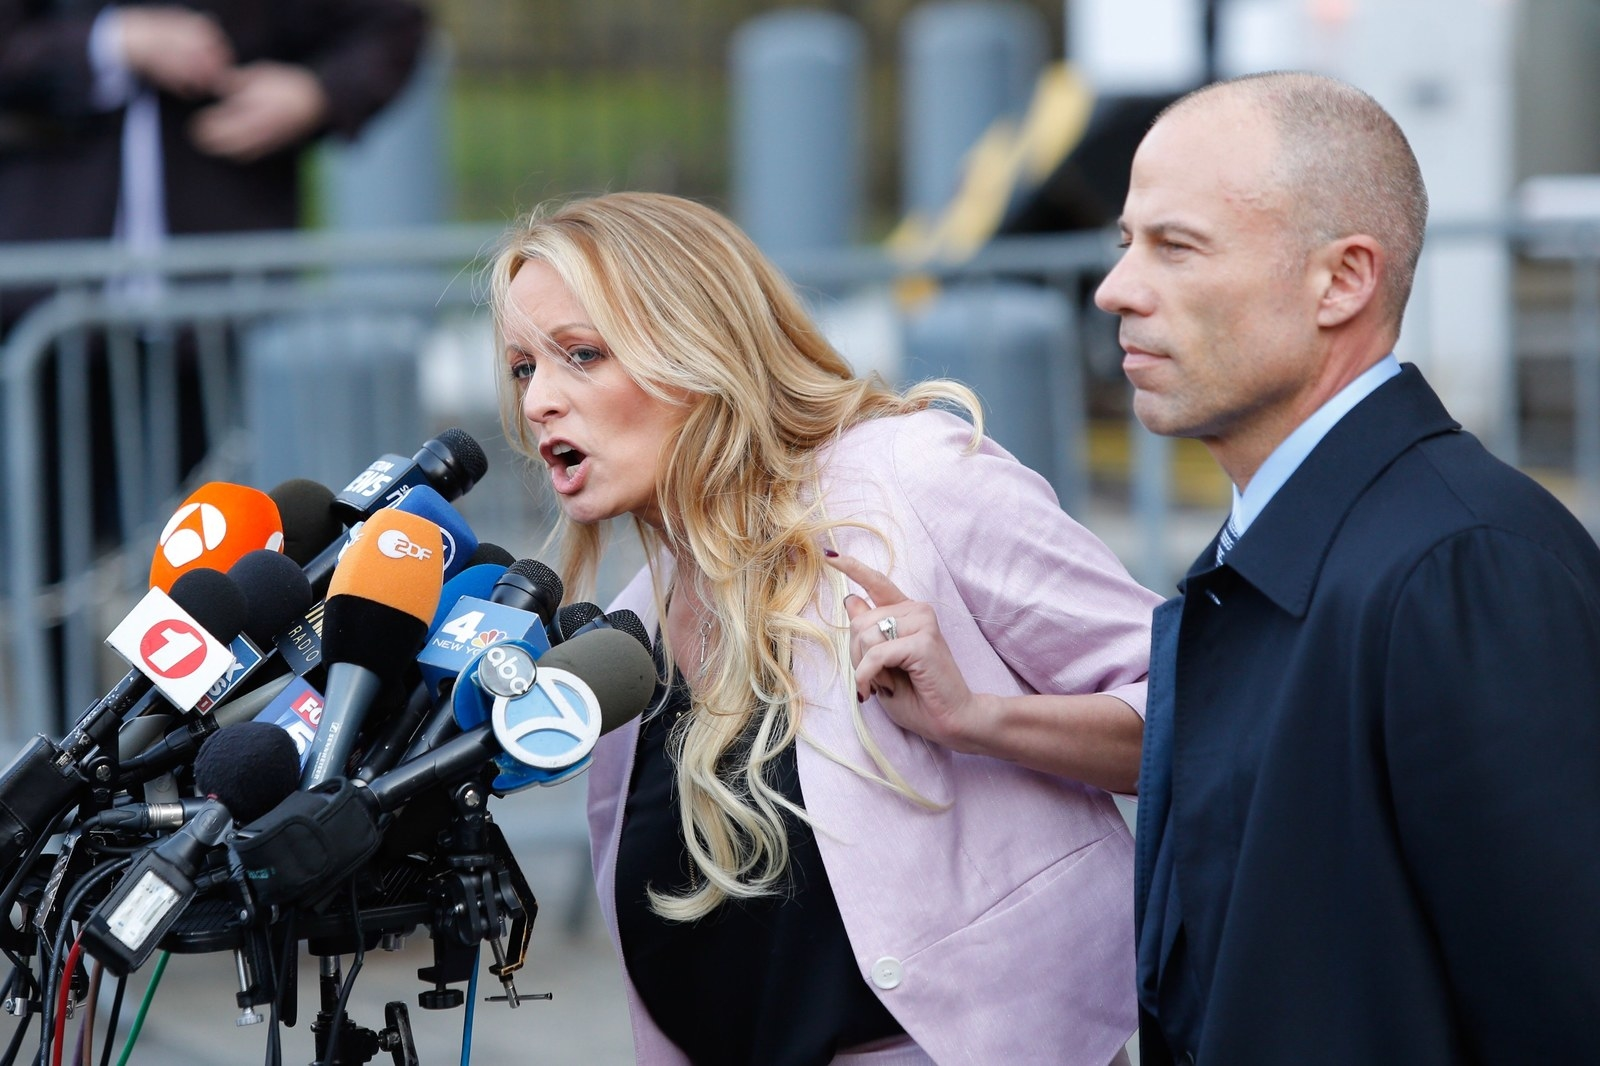 A Federal Judge Has Dismissed Stormy Daniels' Defamation Lawsuit Against Donald Trump